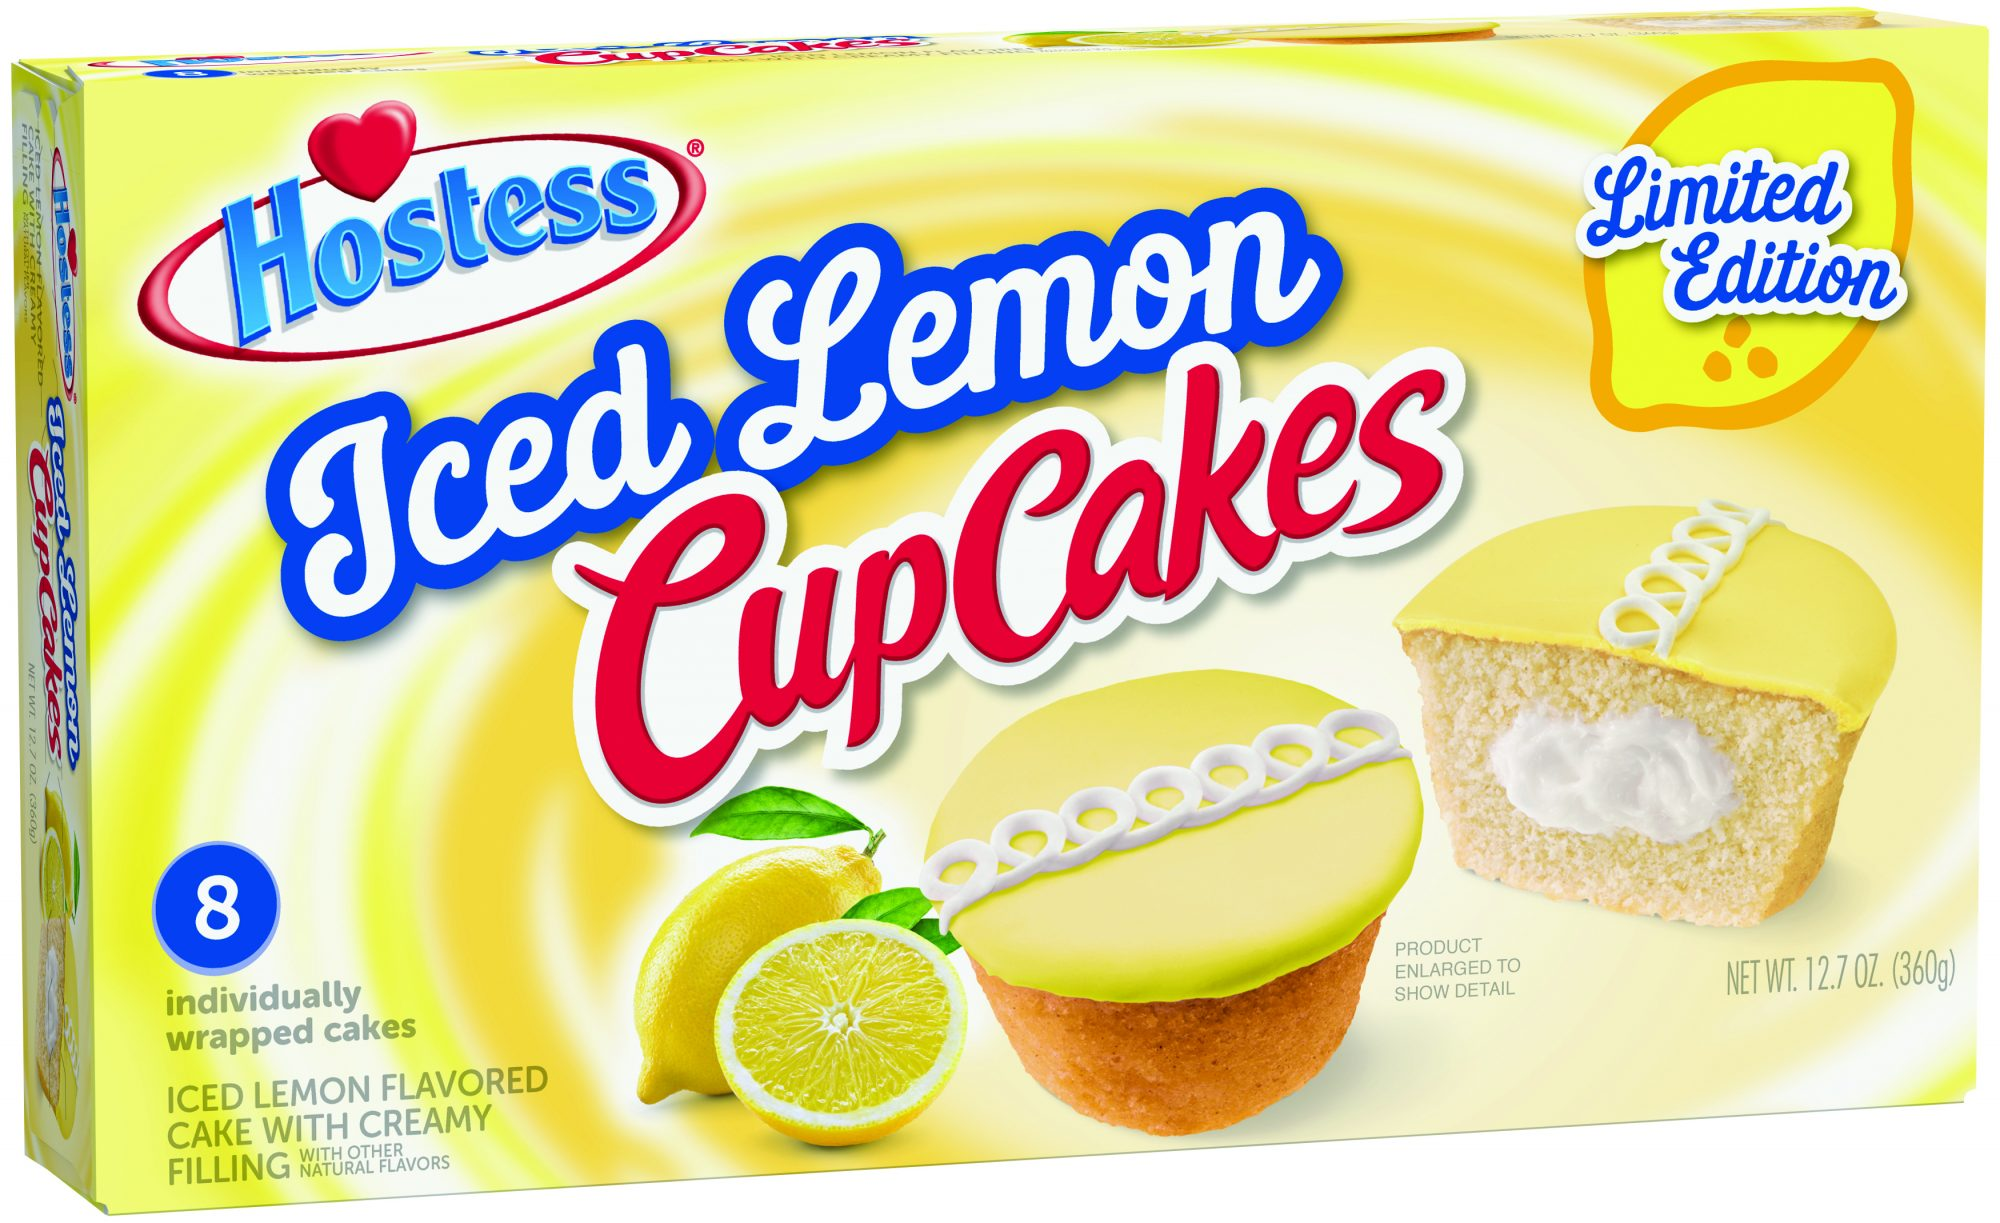 Hostess Debuts Iced Lemon CupCakes for a Limited-Time Only